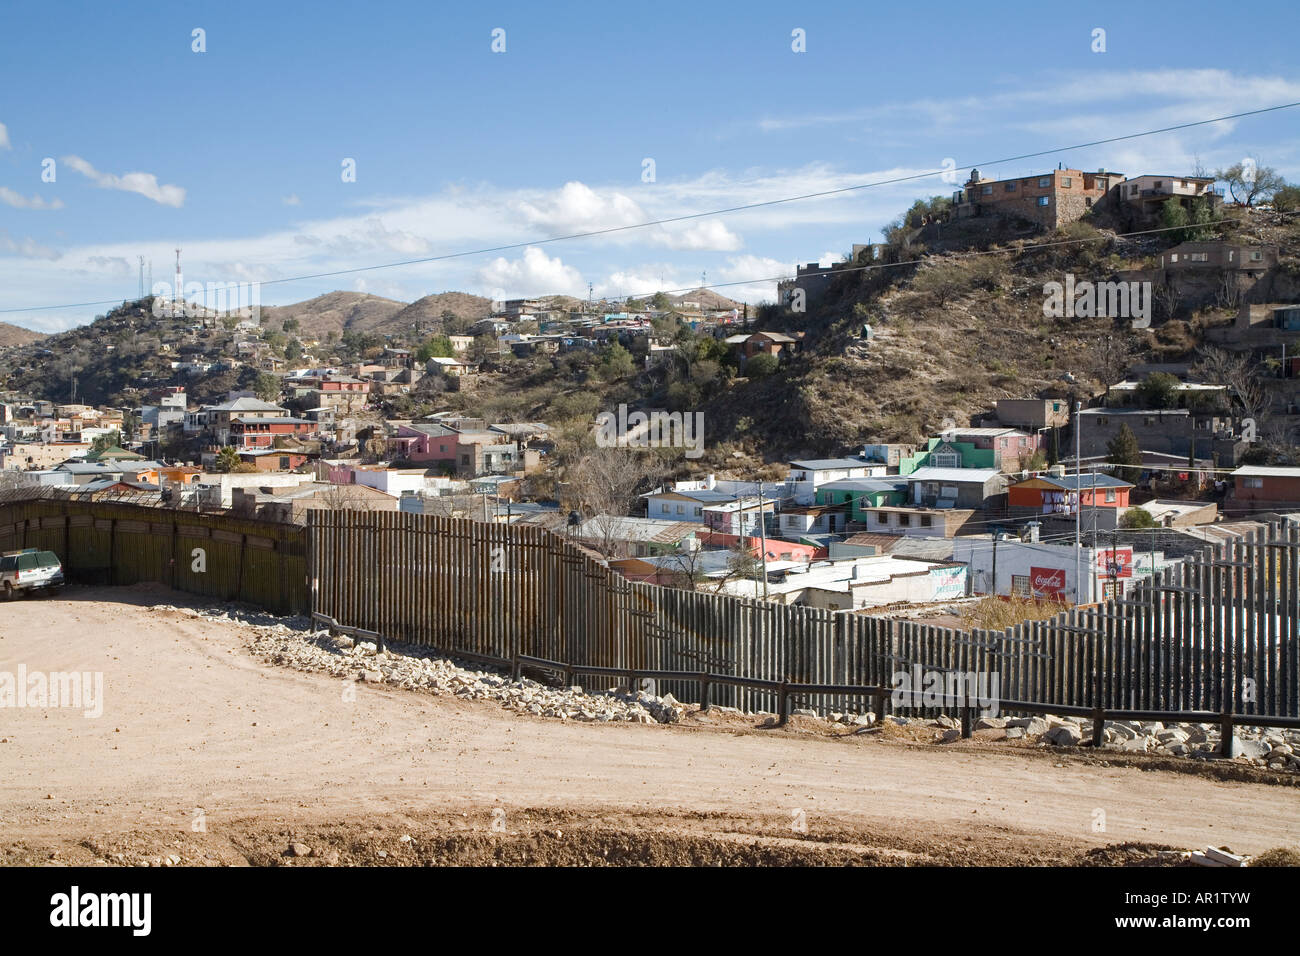 Nogales Arizona A section of the border fence that separates the United States in the foreground from Mexico Stock Photo